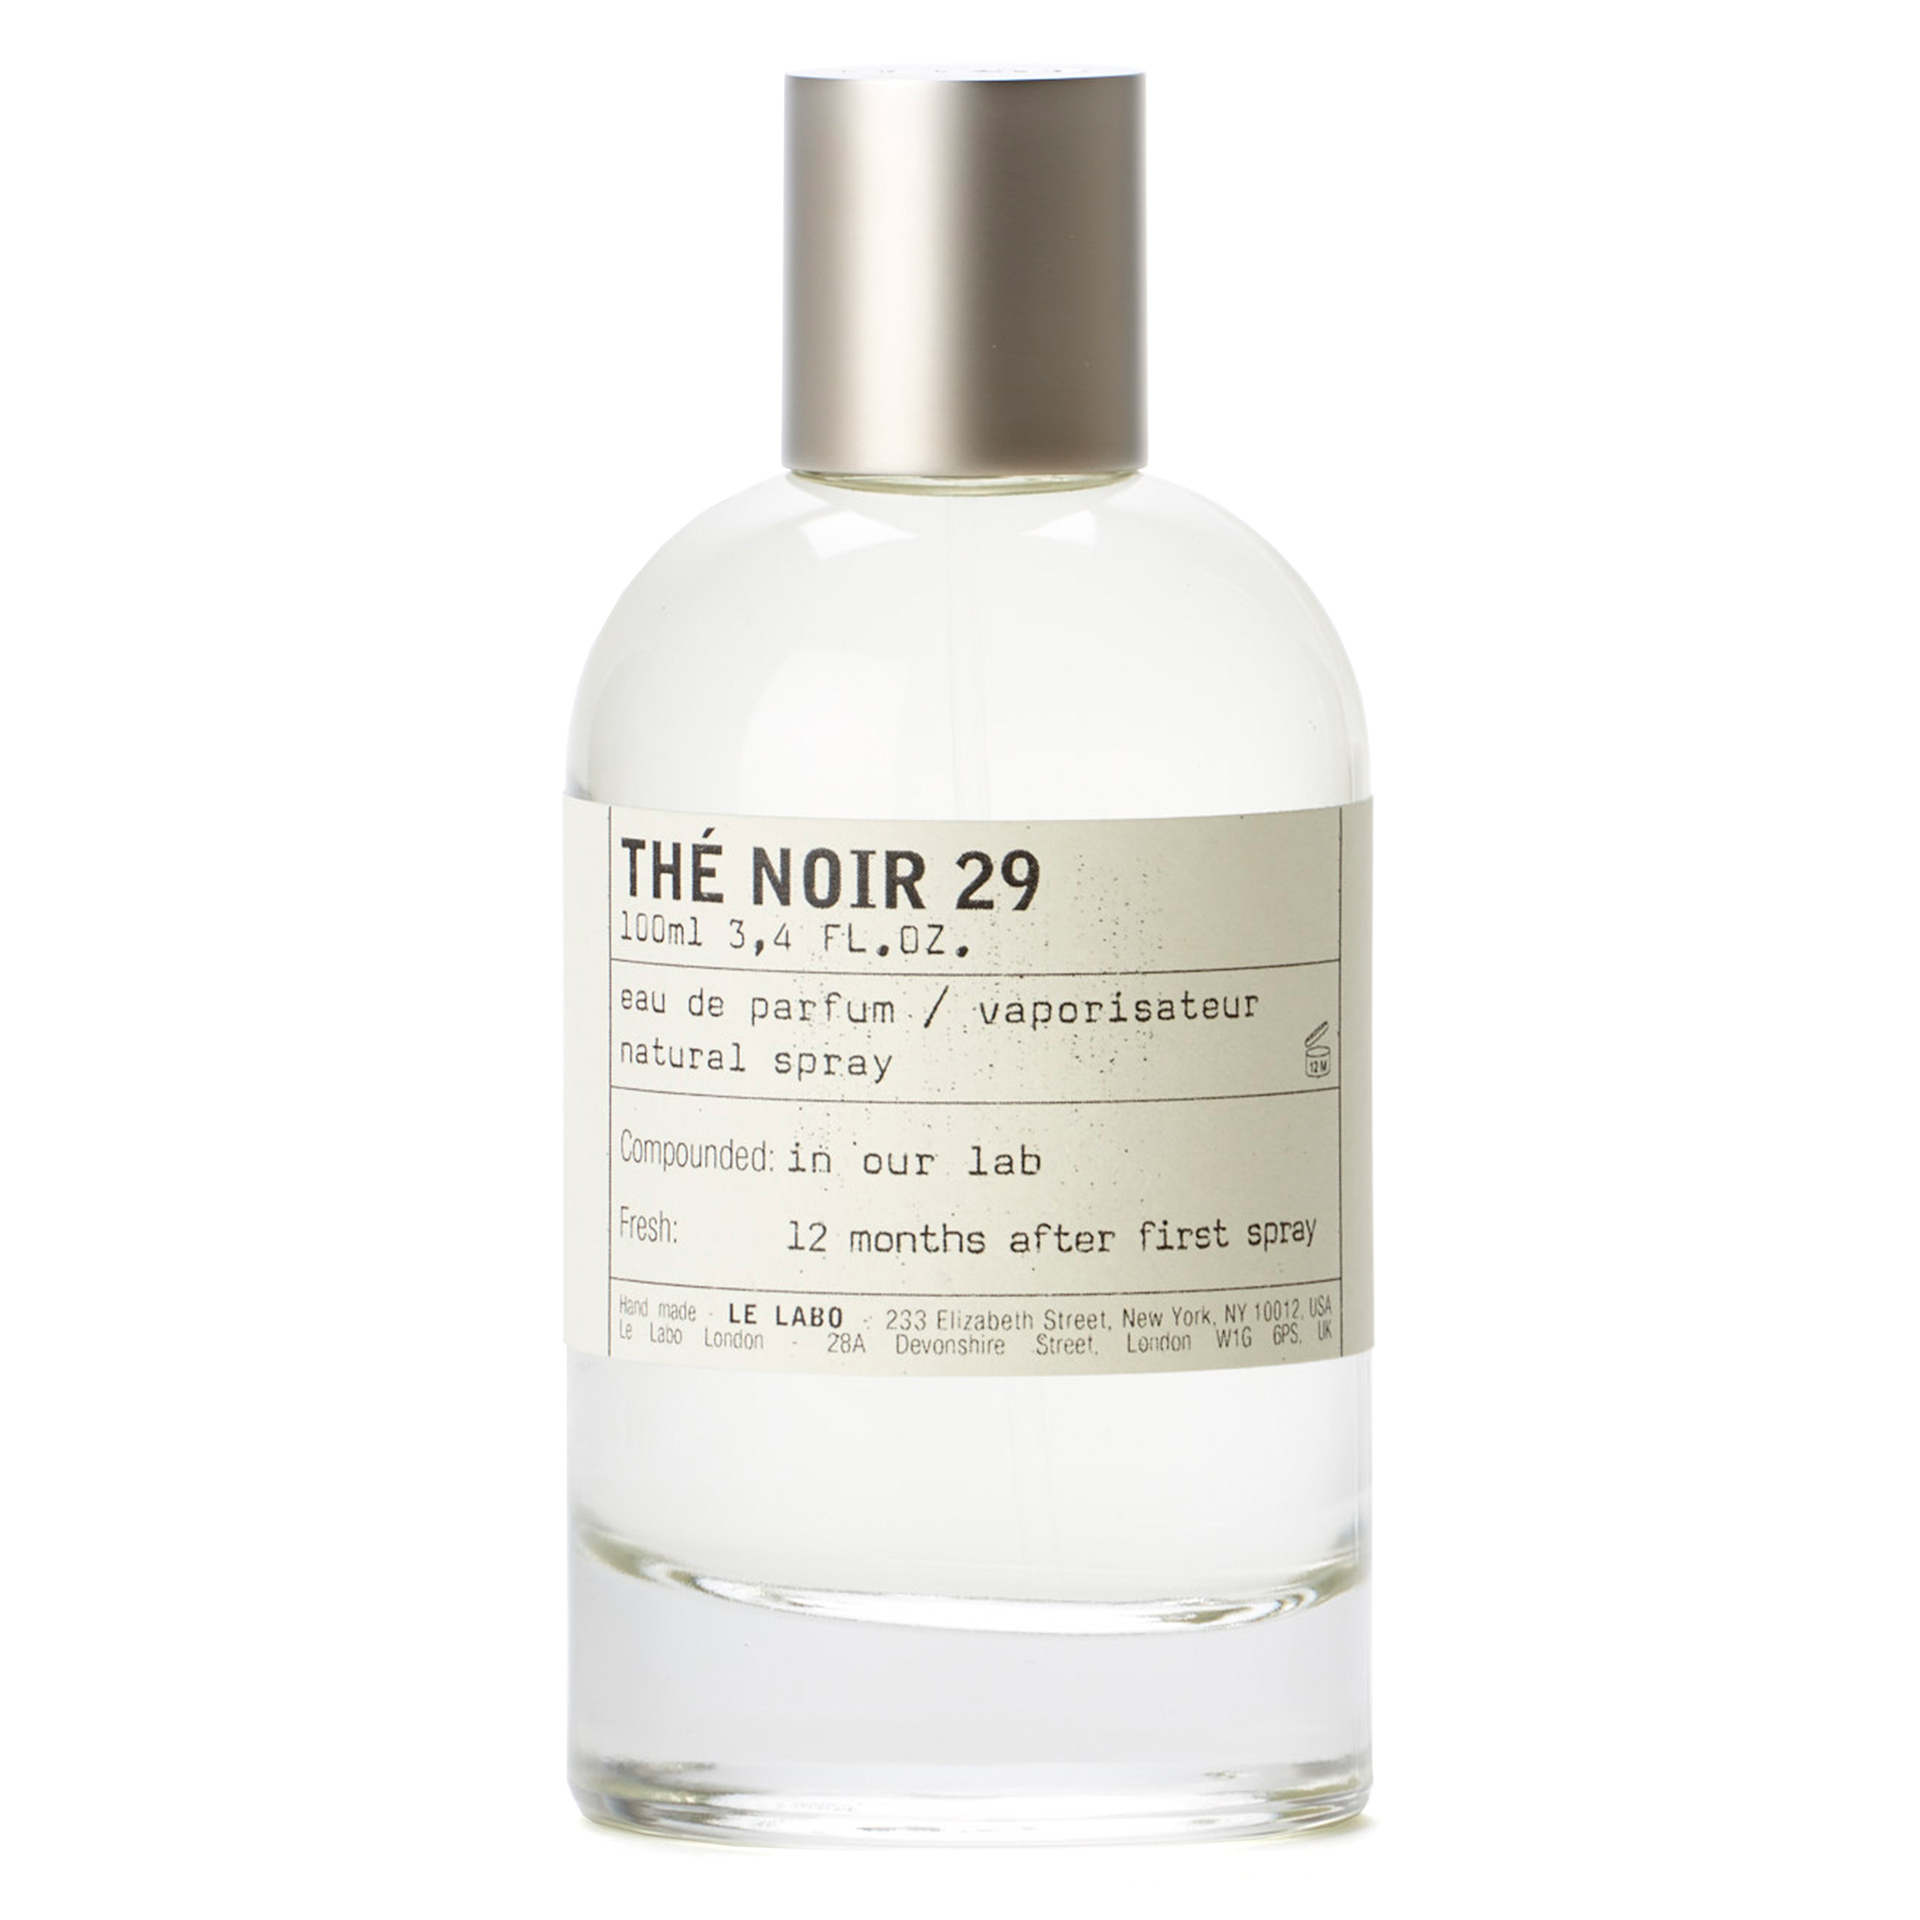 The noir 29 Edp 100 ml